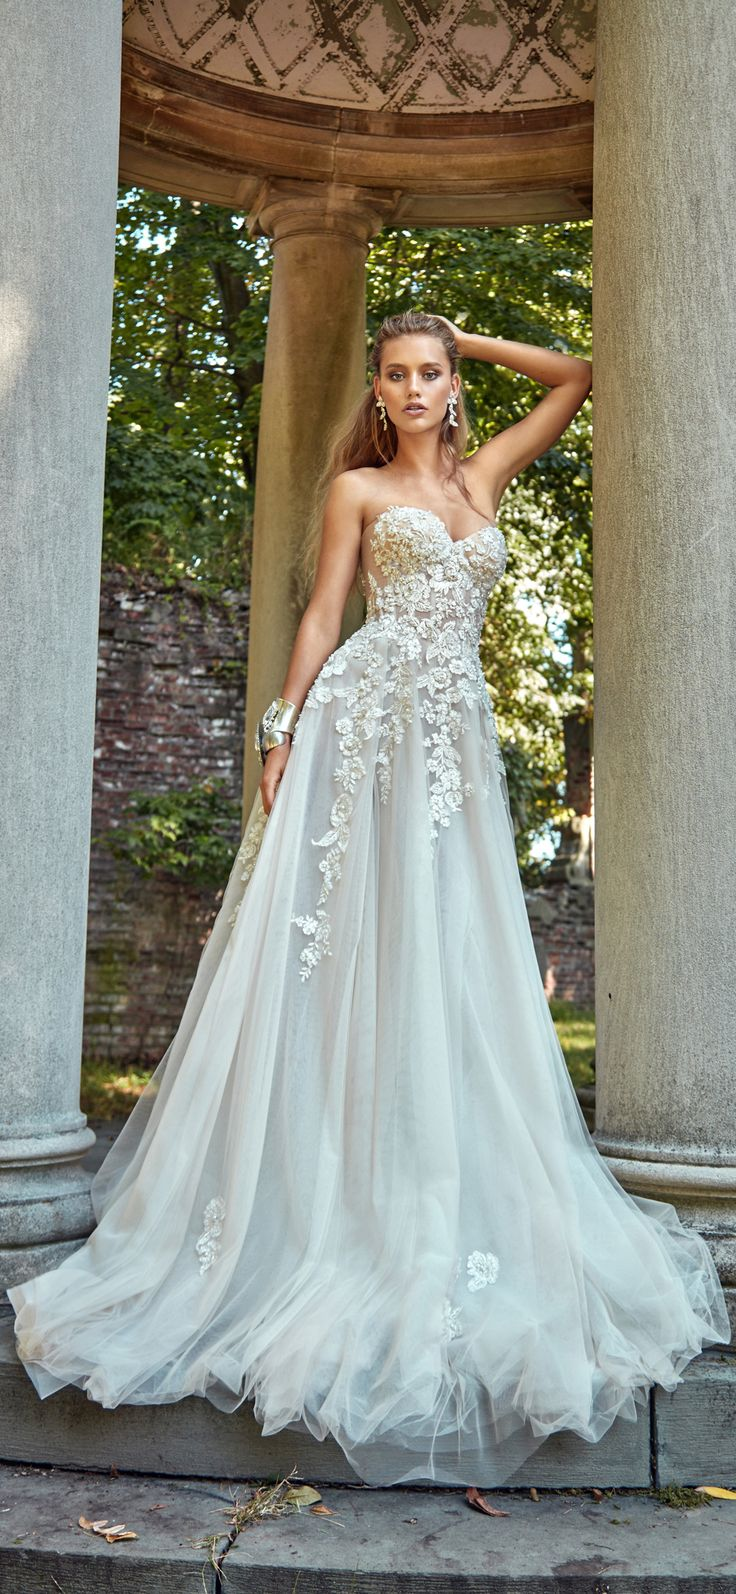 Best 25 romantic wedding gowns ideas on pinterest for Pinterest dresses for wedding